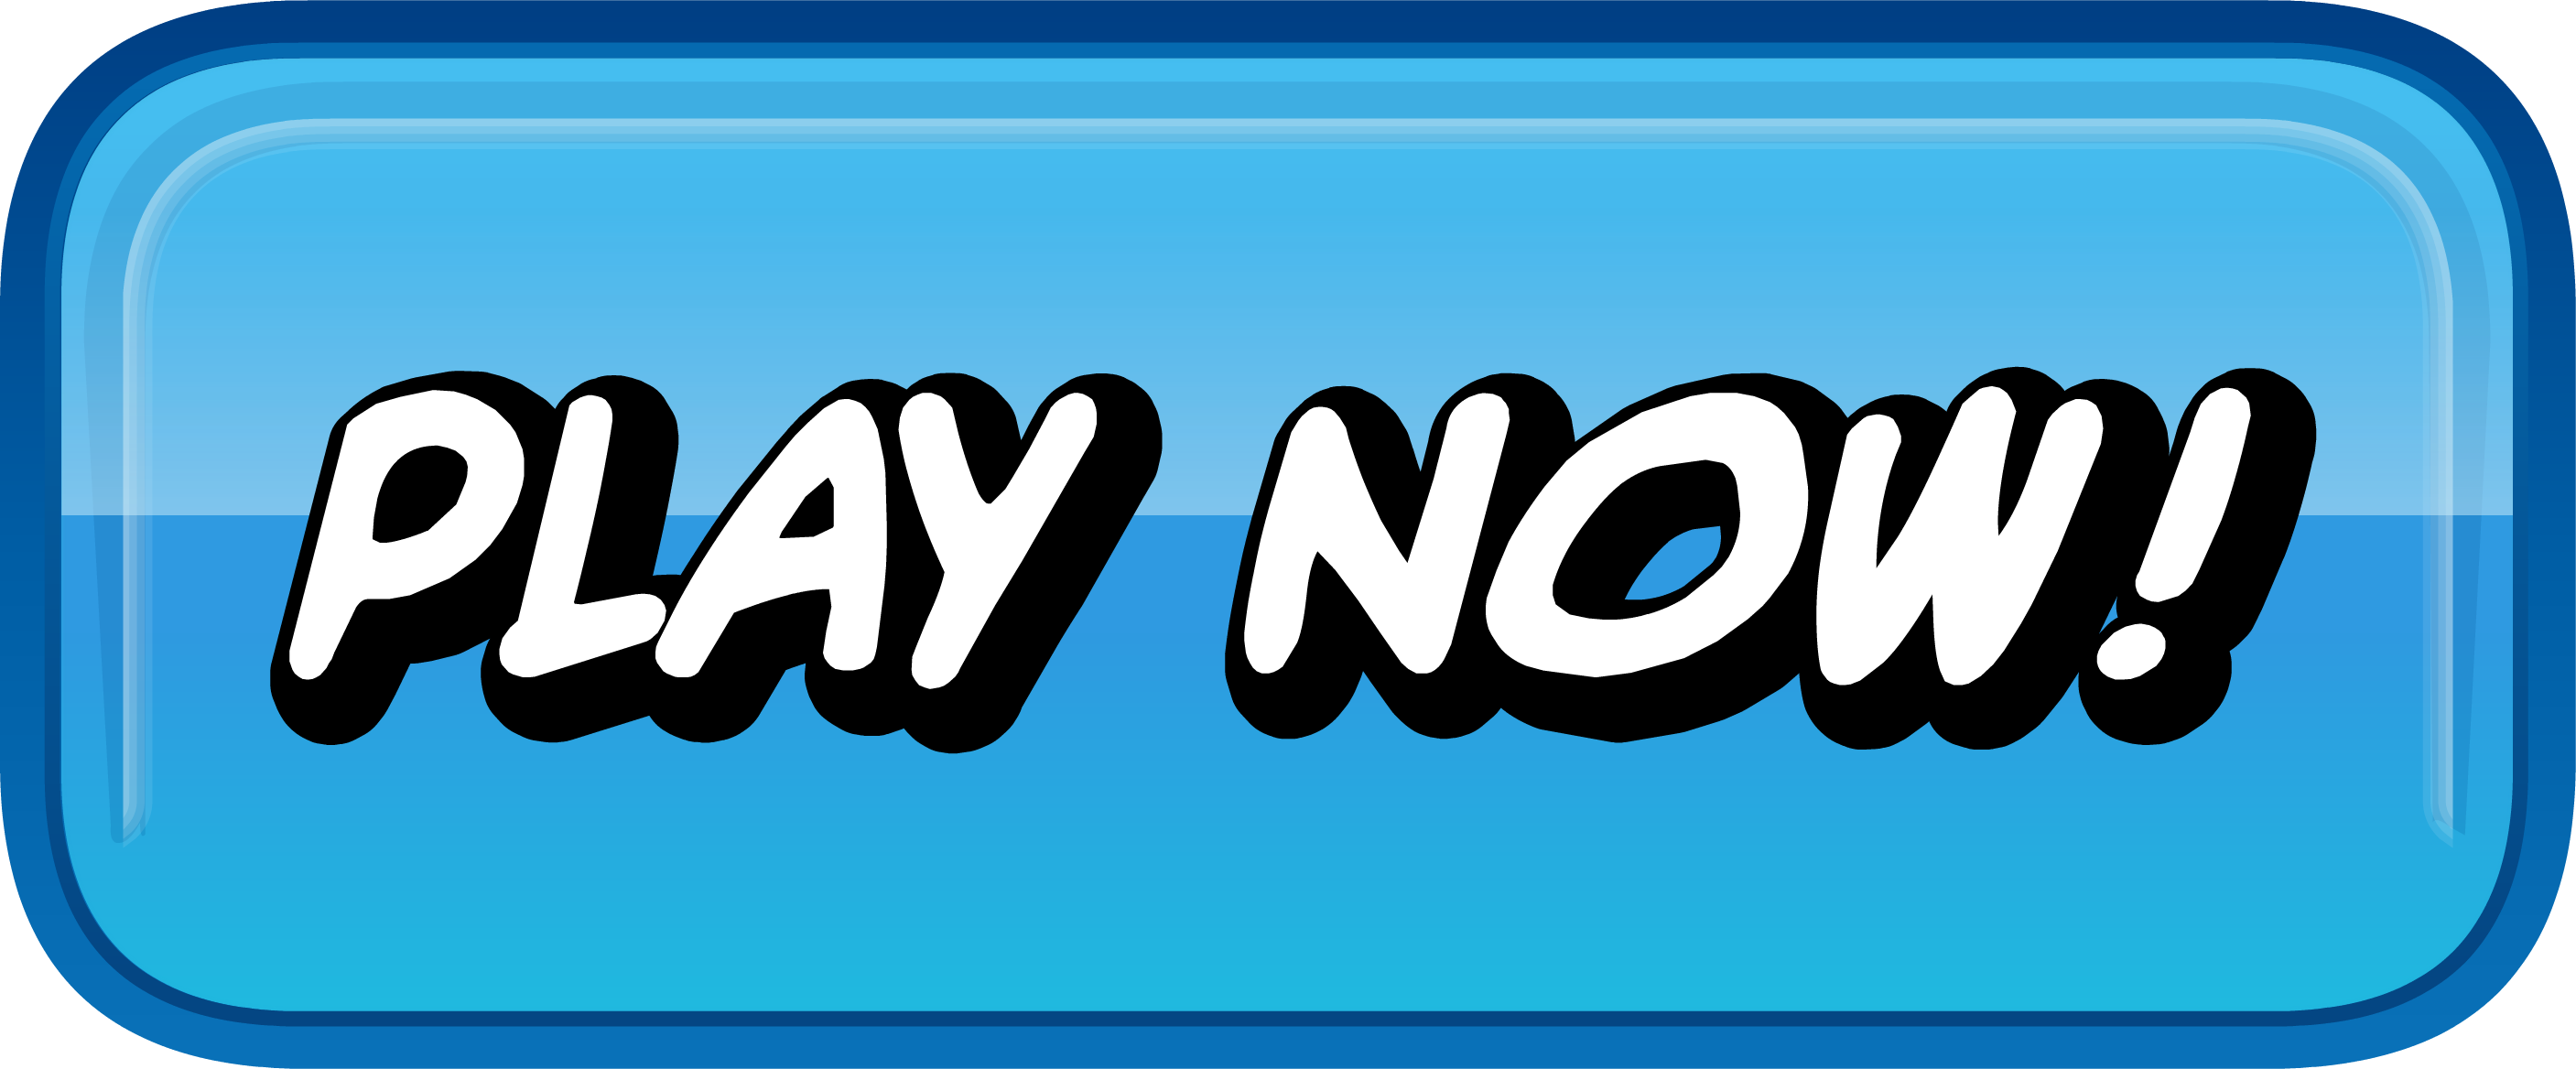 Express bonus Casino Slot Online | PLAY NOW